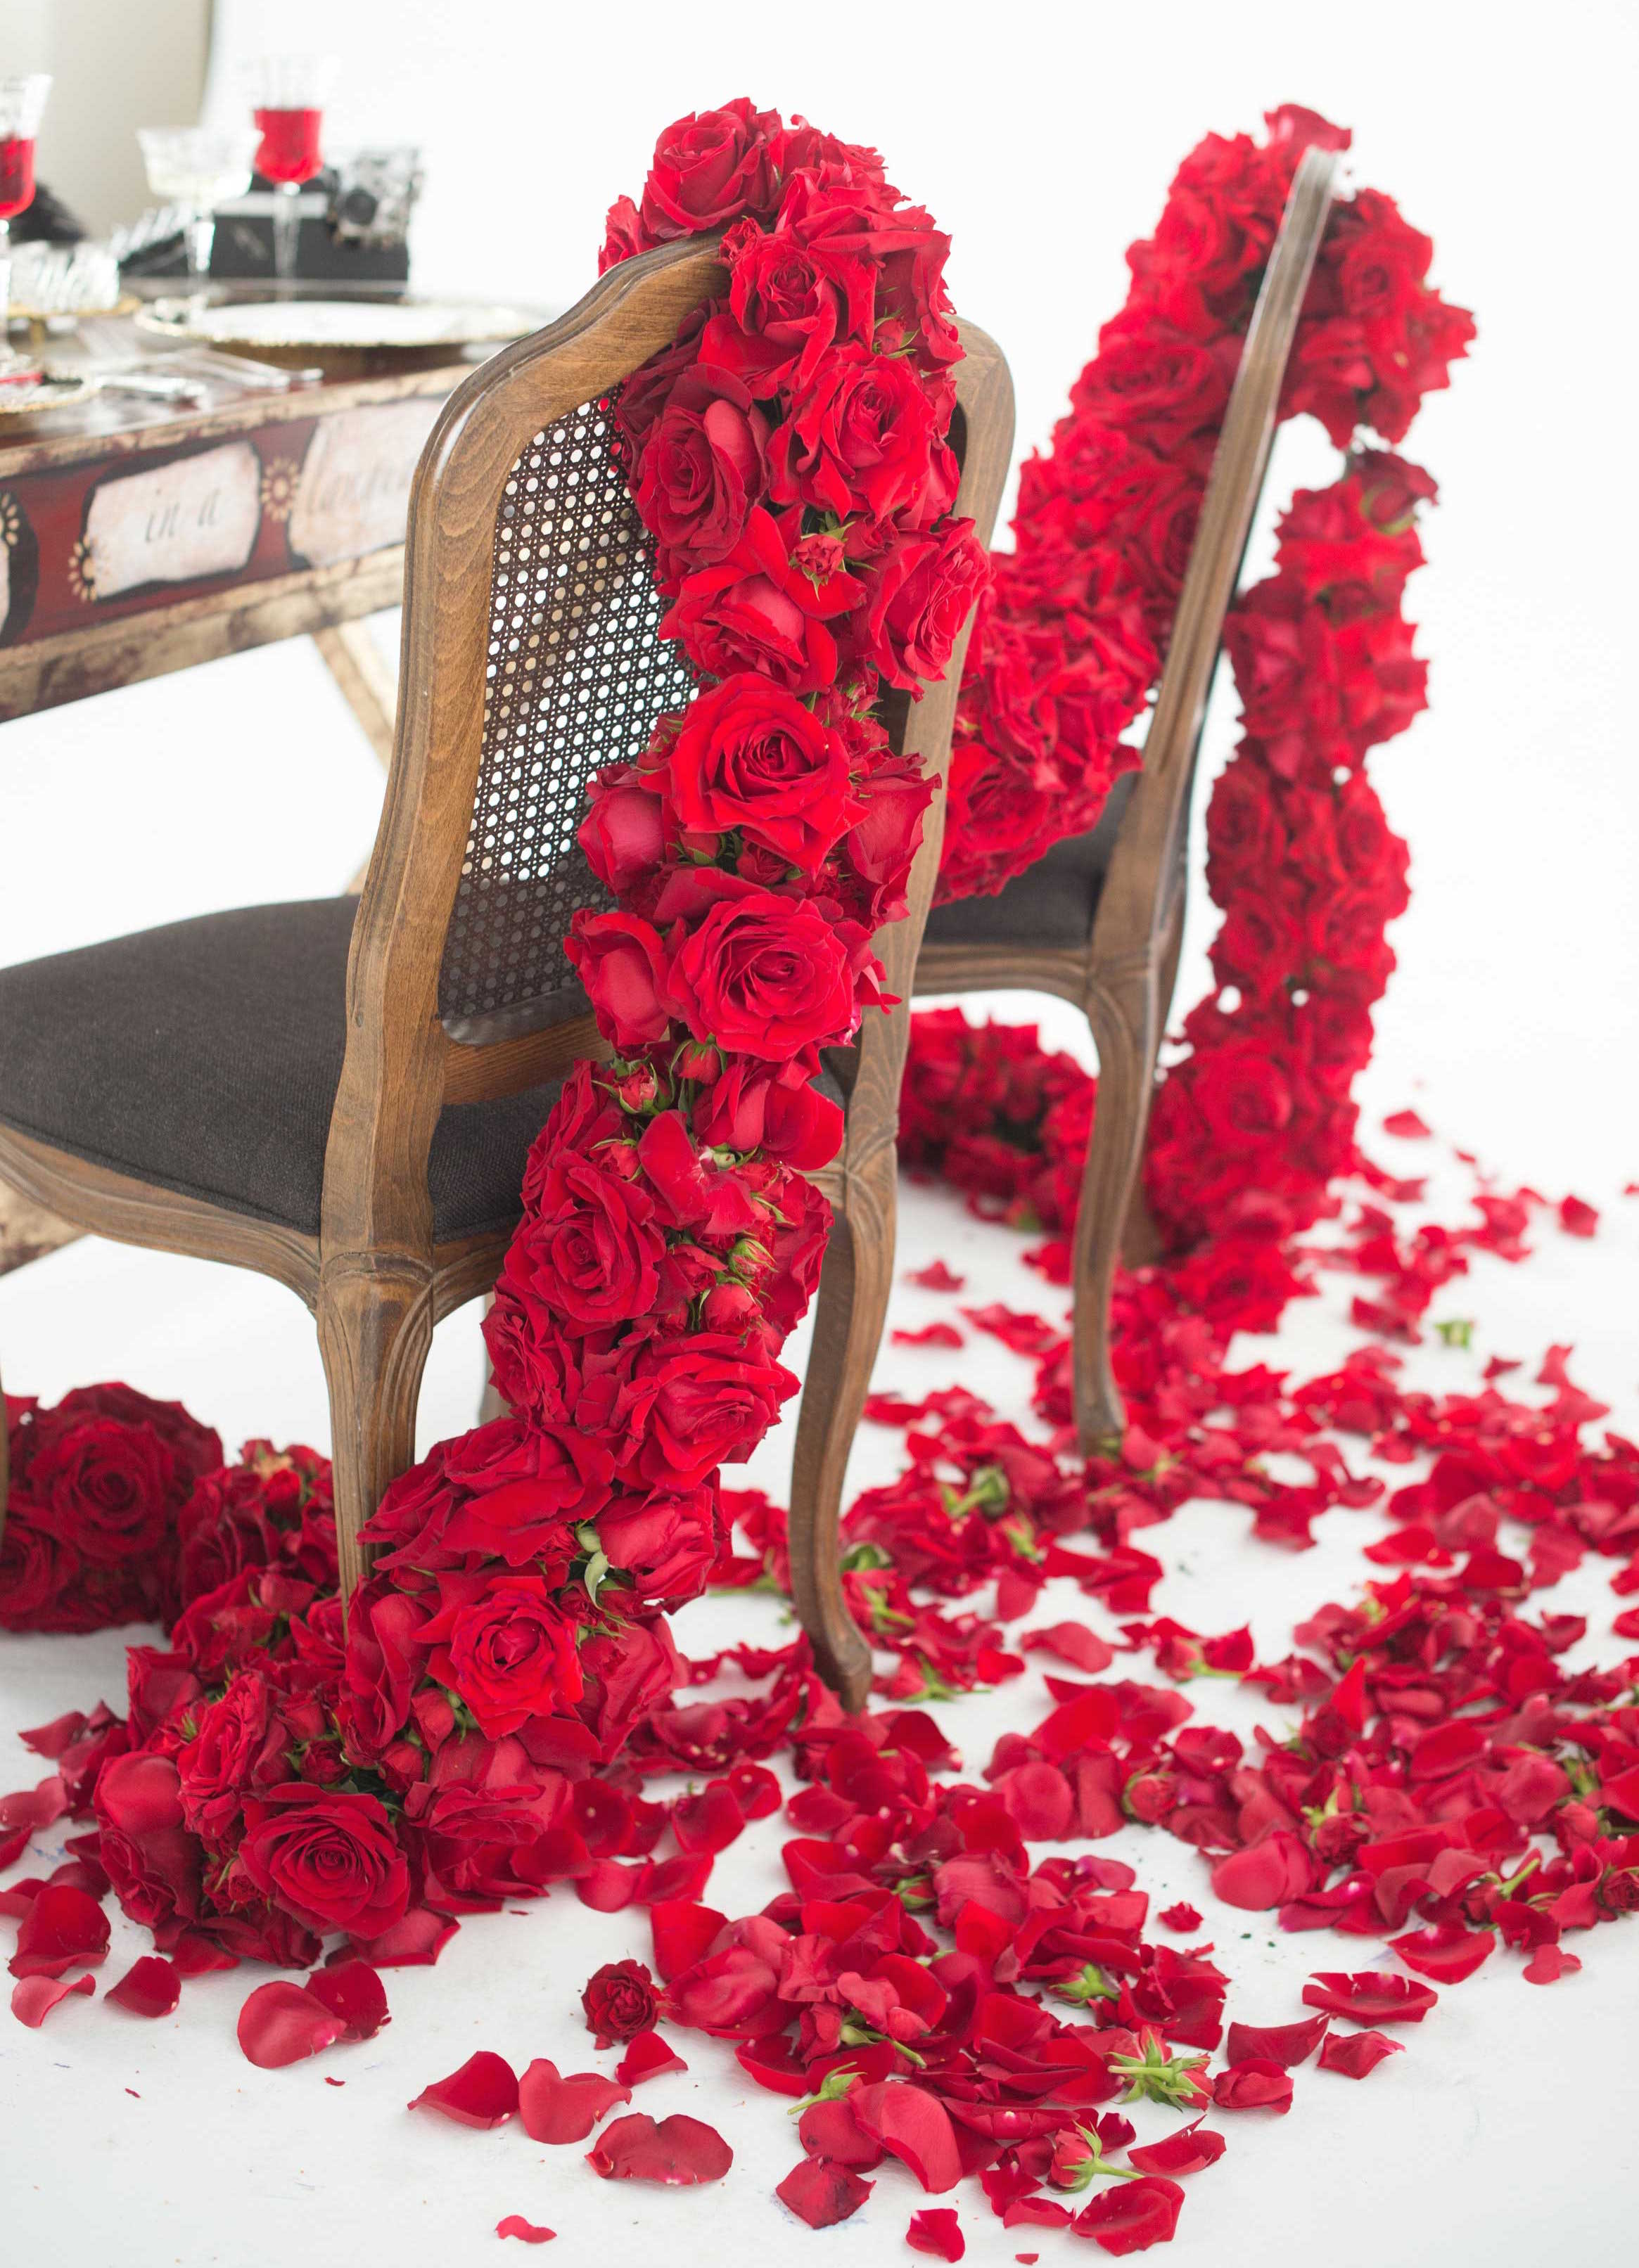 EVOKE DC Love Letters sweetheart table bride groom chairs with garland of red roses petals